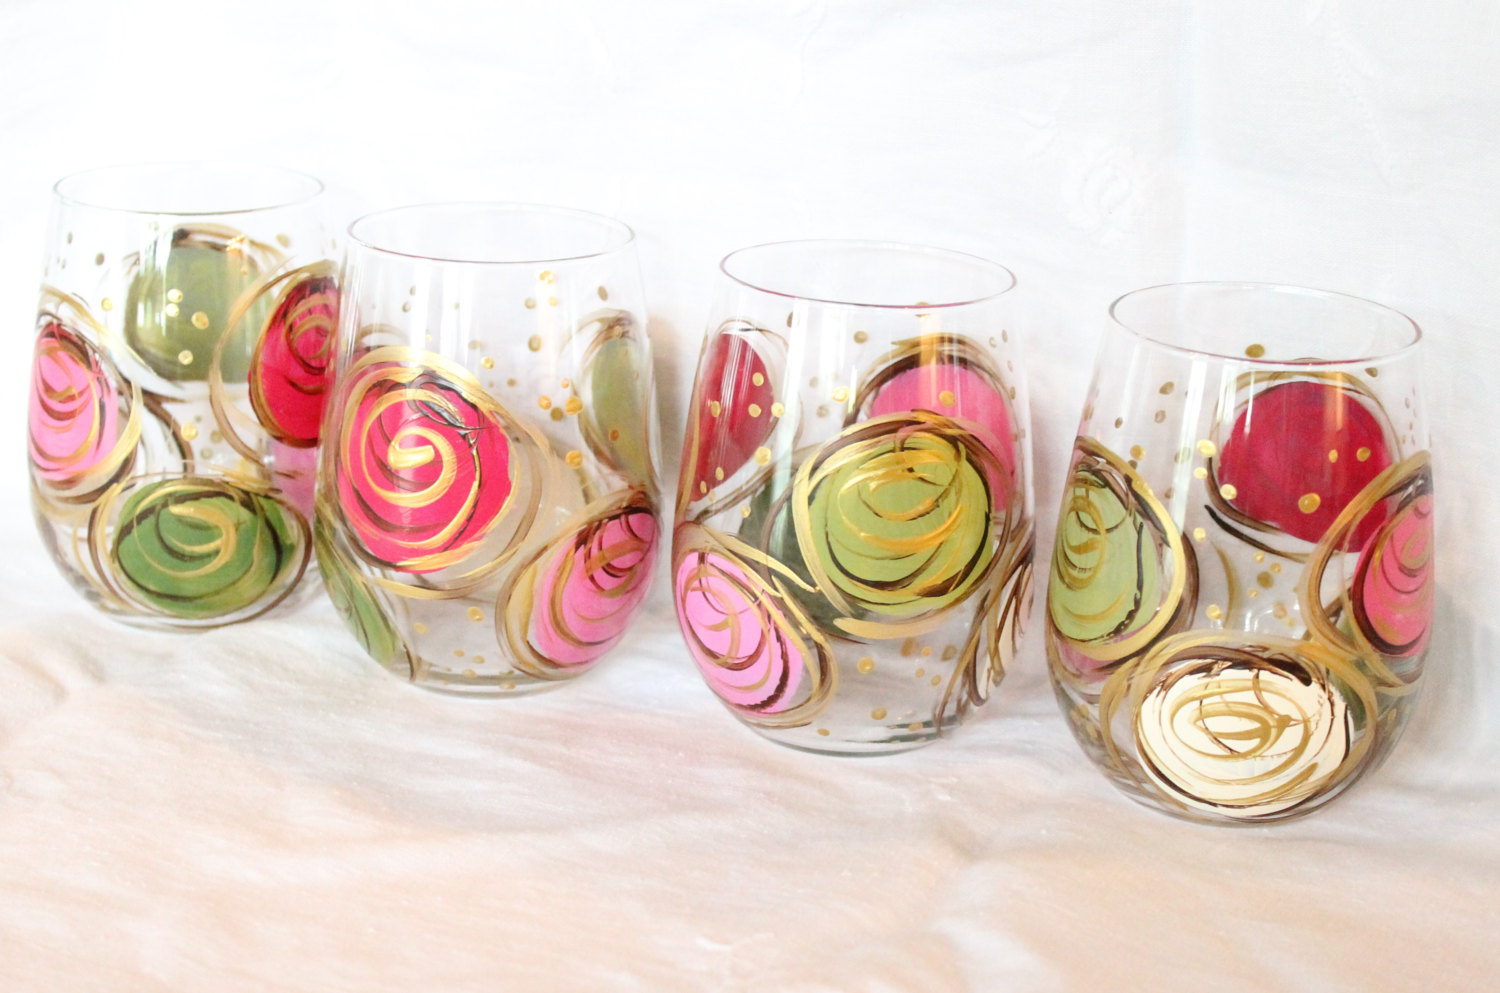 Stemless wine glasses hand painted pink and green swirl design for Painted stemless wine glasses